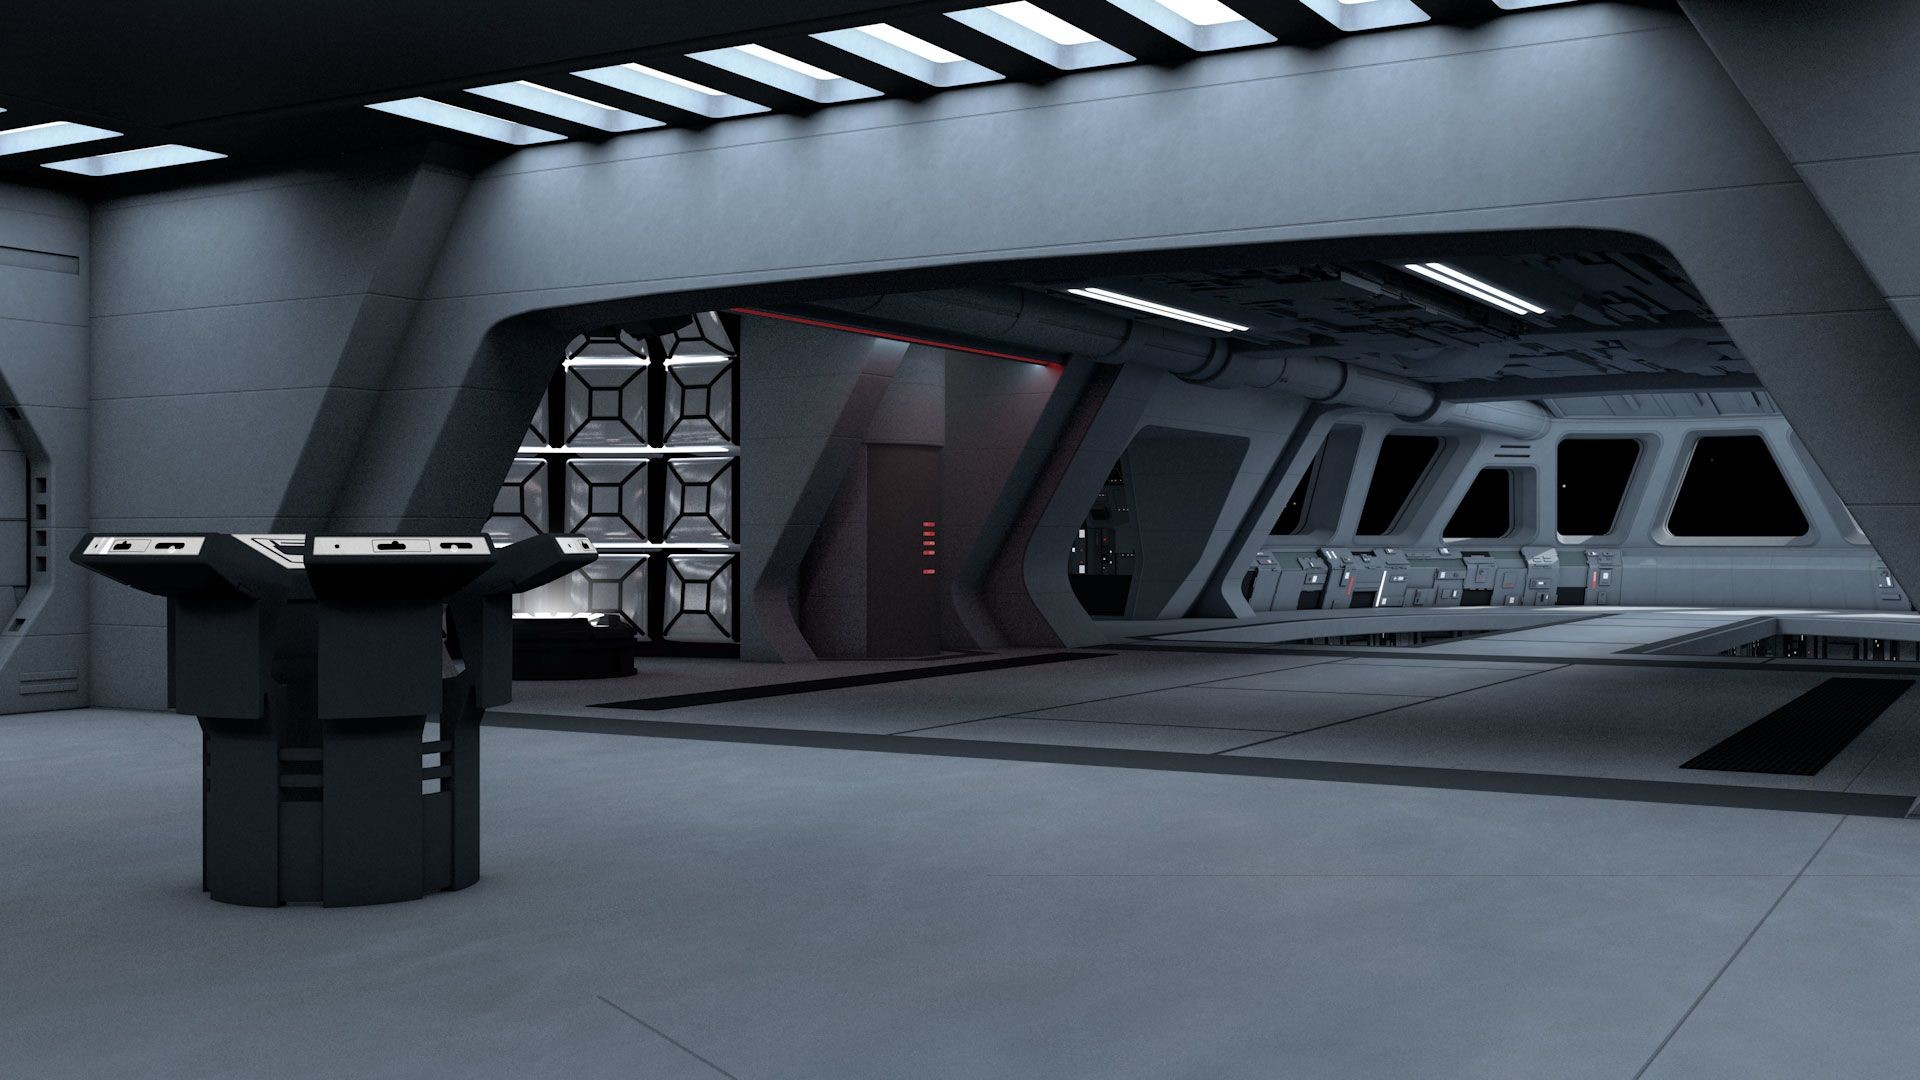 inside the imperial star destroyer – Google Search